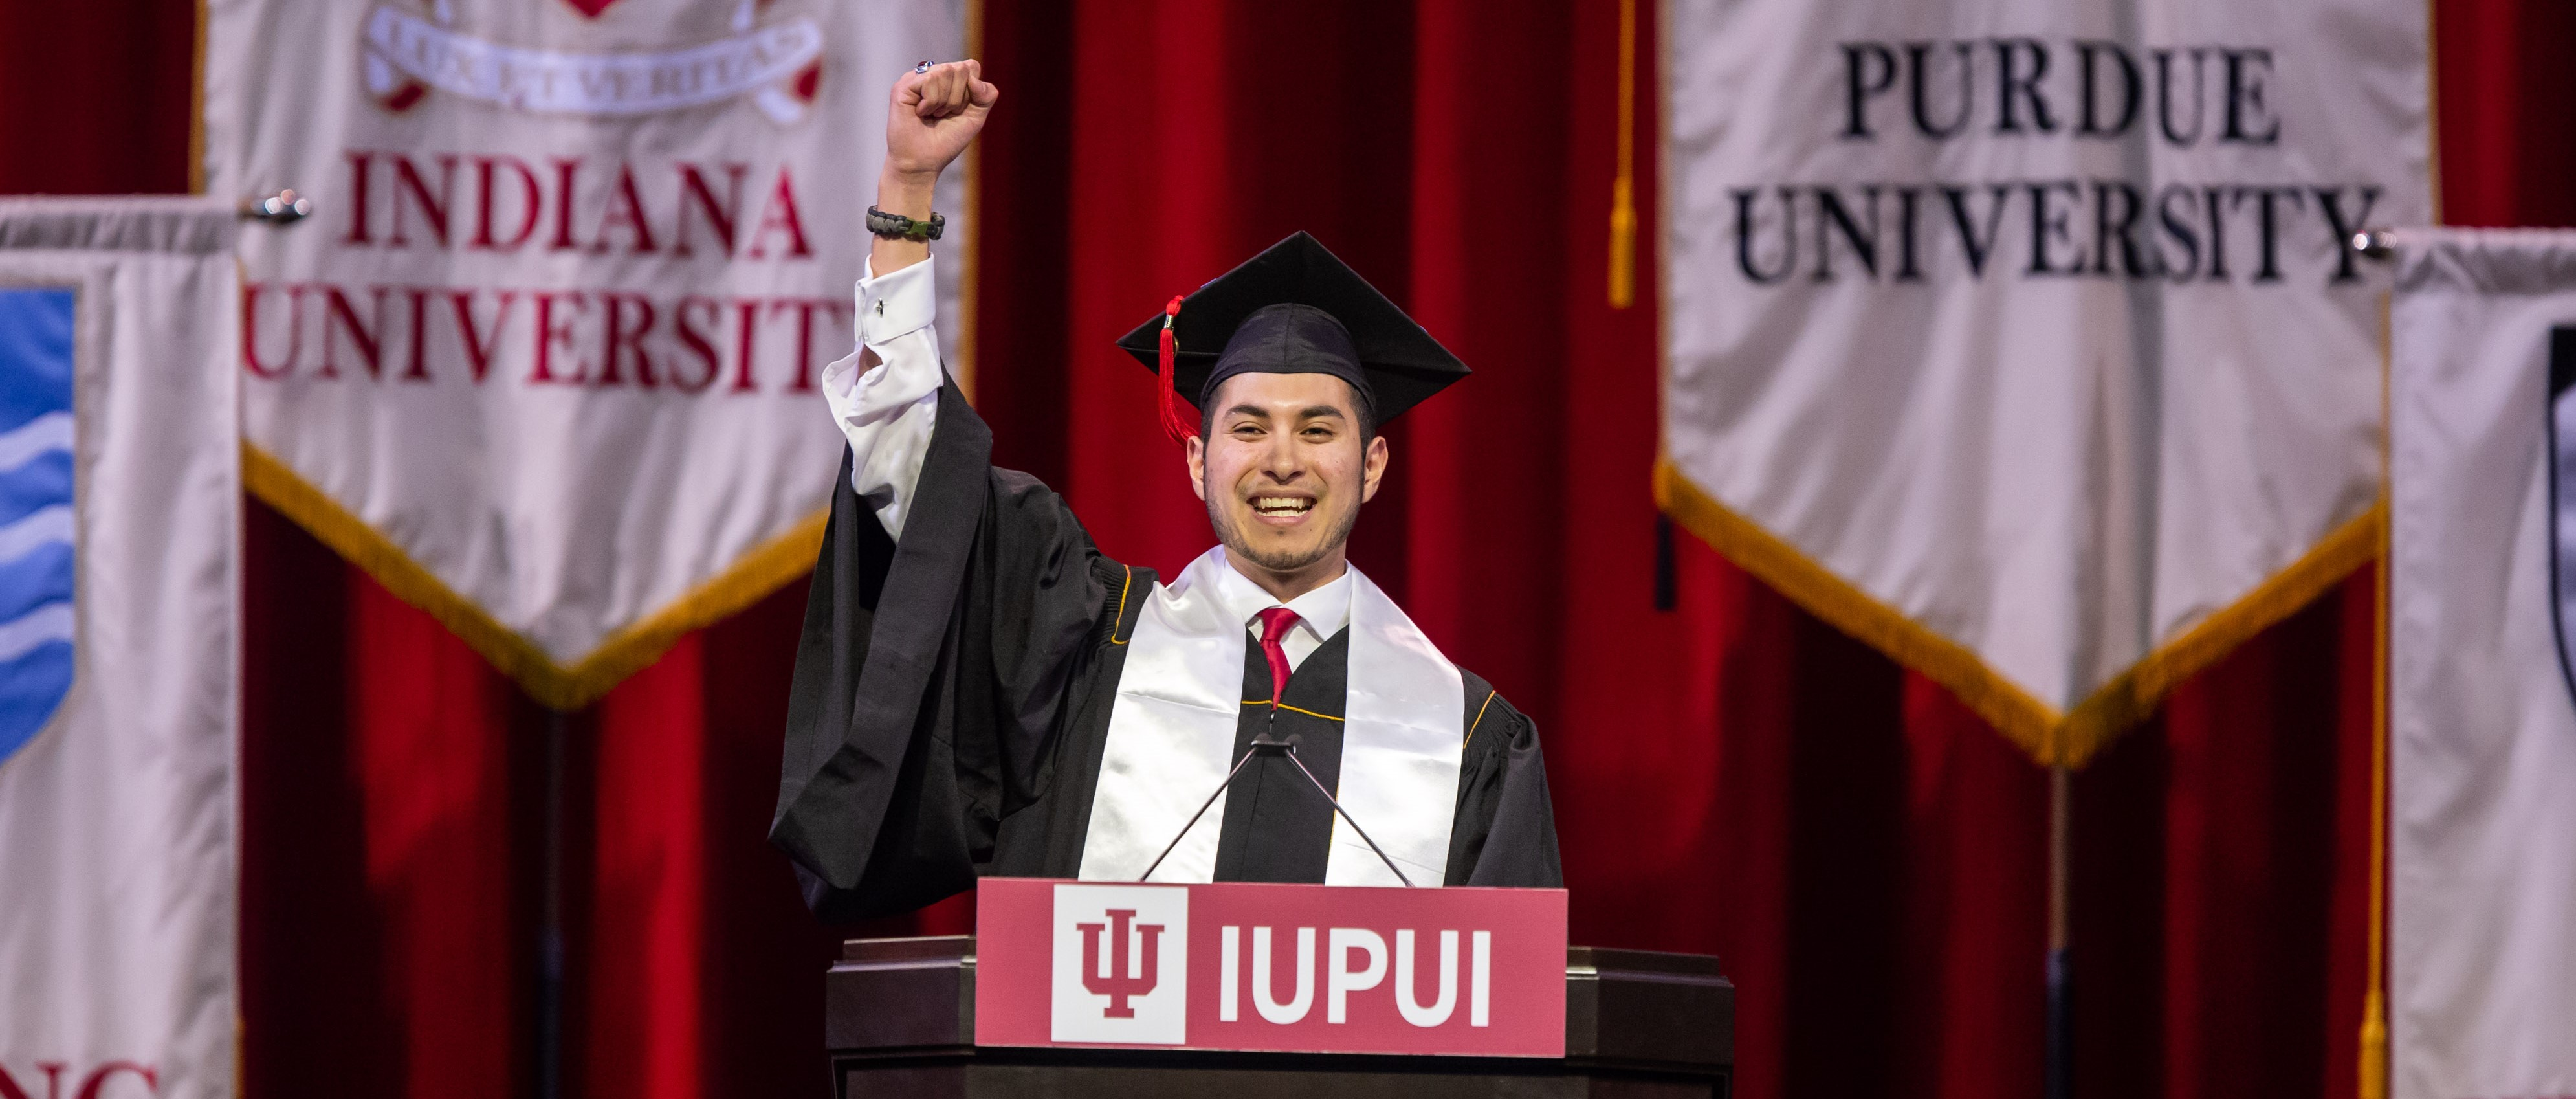 Iupui Financial Aid >> Frequently Asked Questions About Iupui Admissions Office